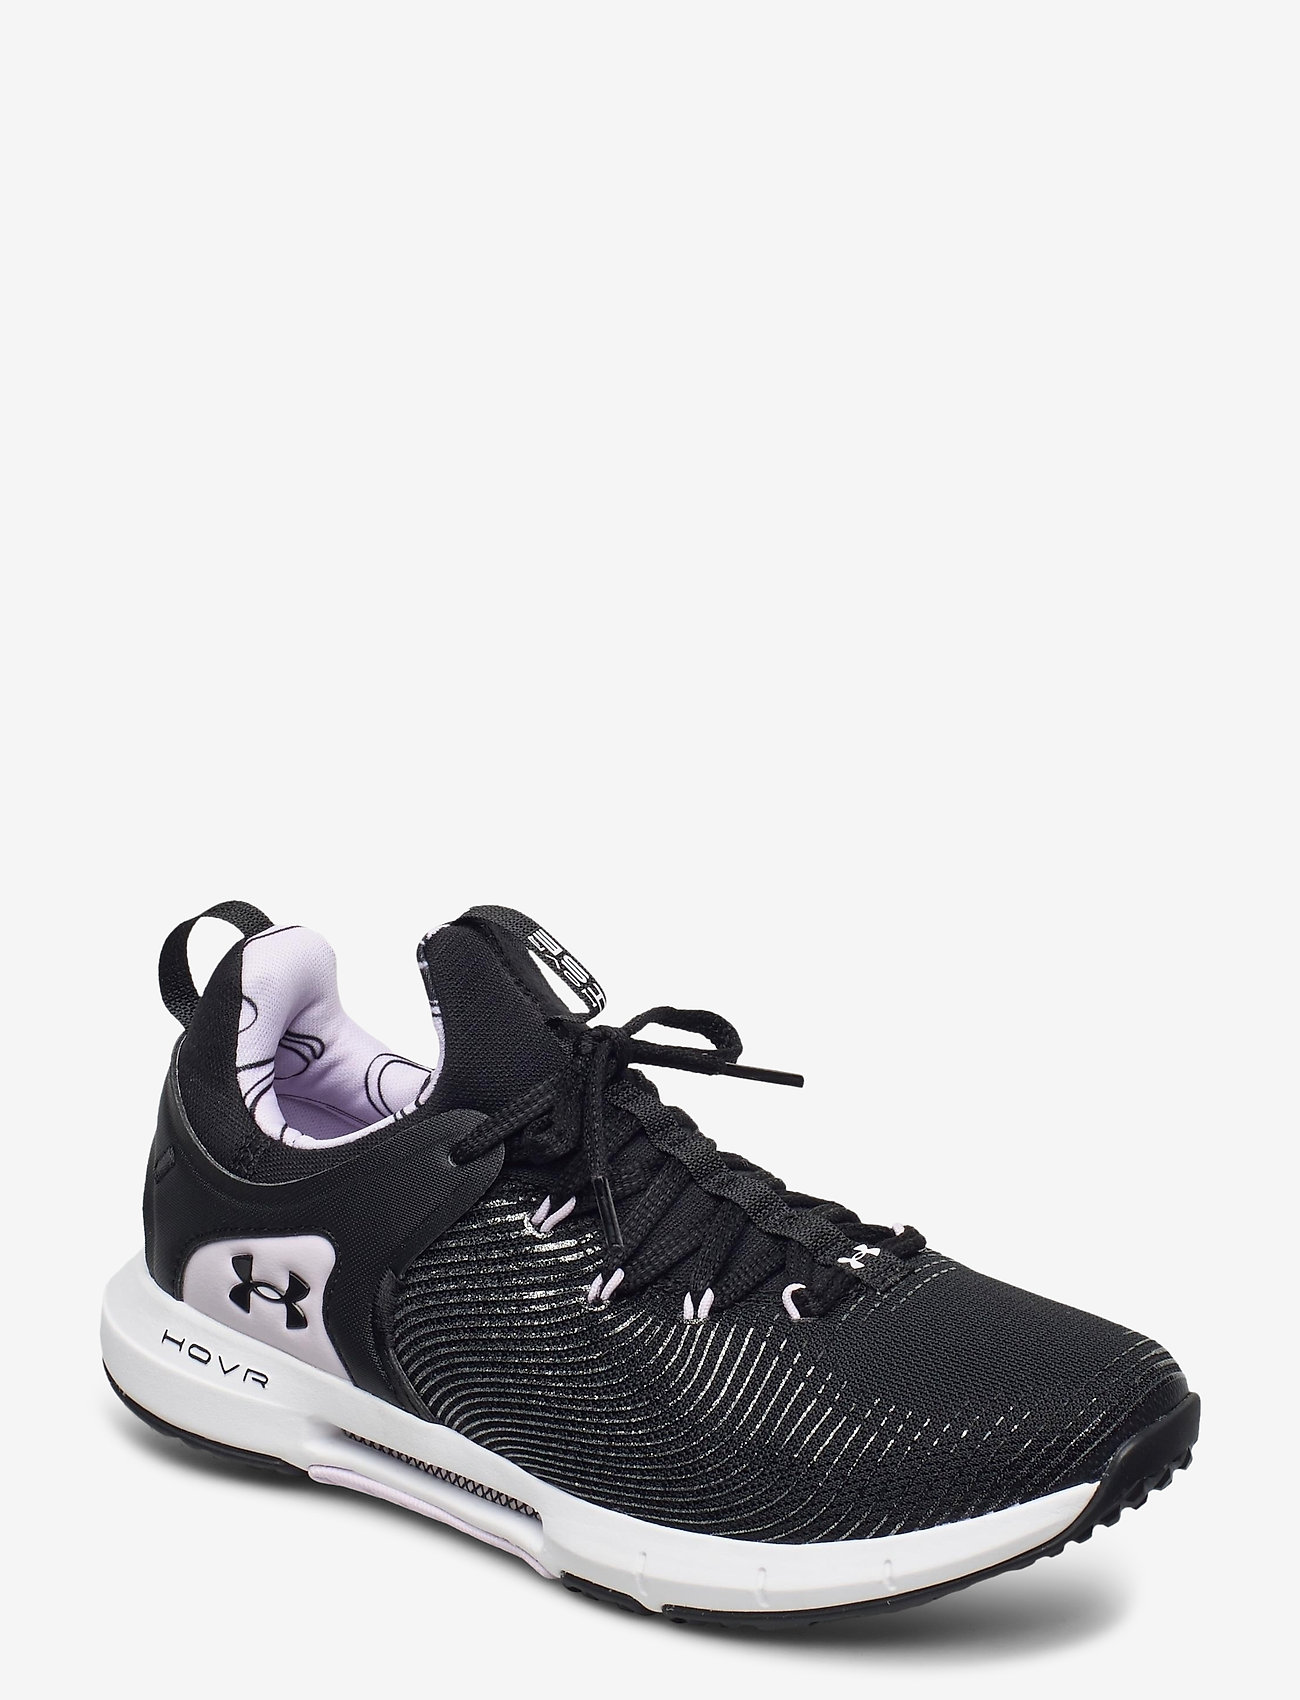 Under Armour - UA W HOVR Rise 2 LUX - lage sneakers - black - 0